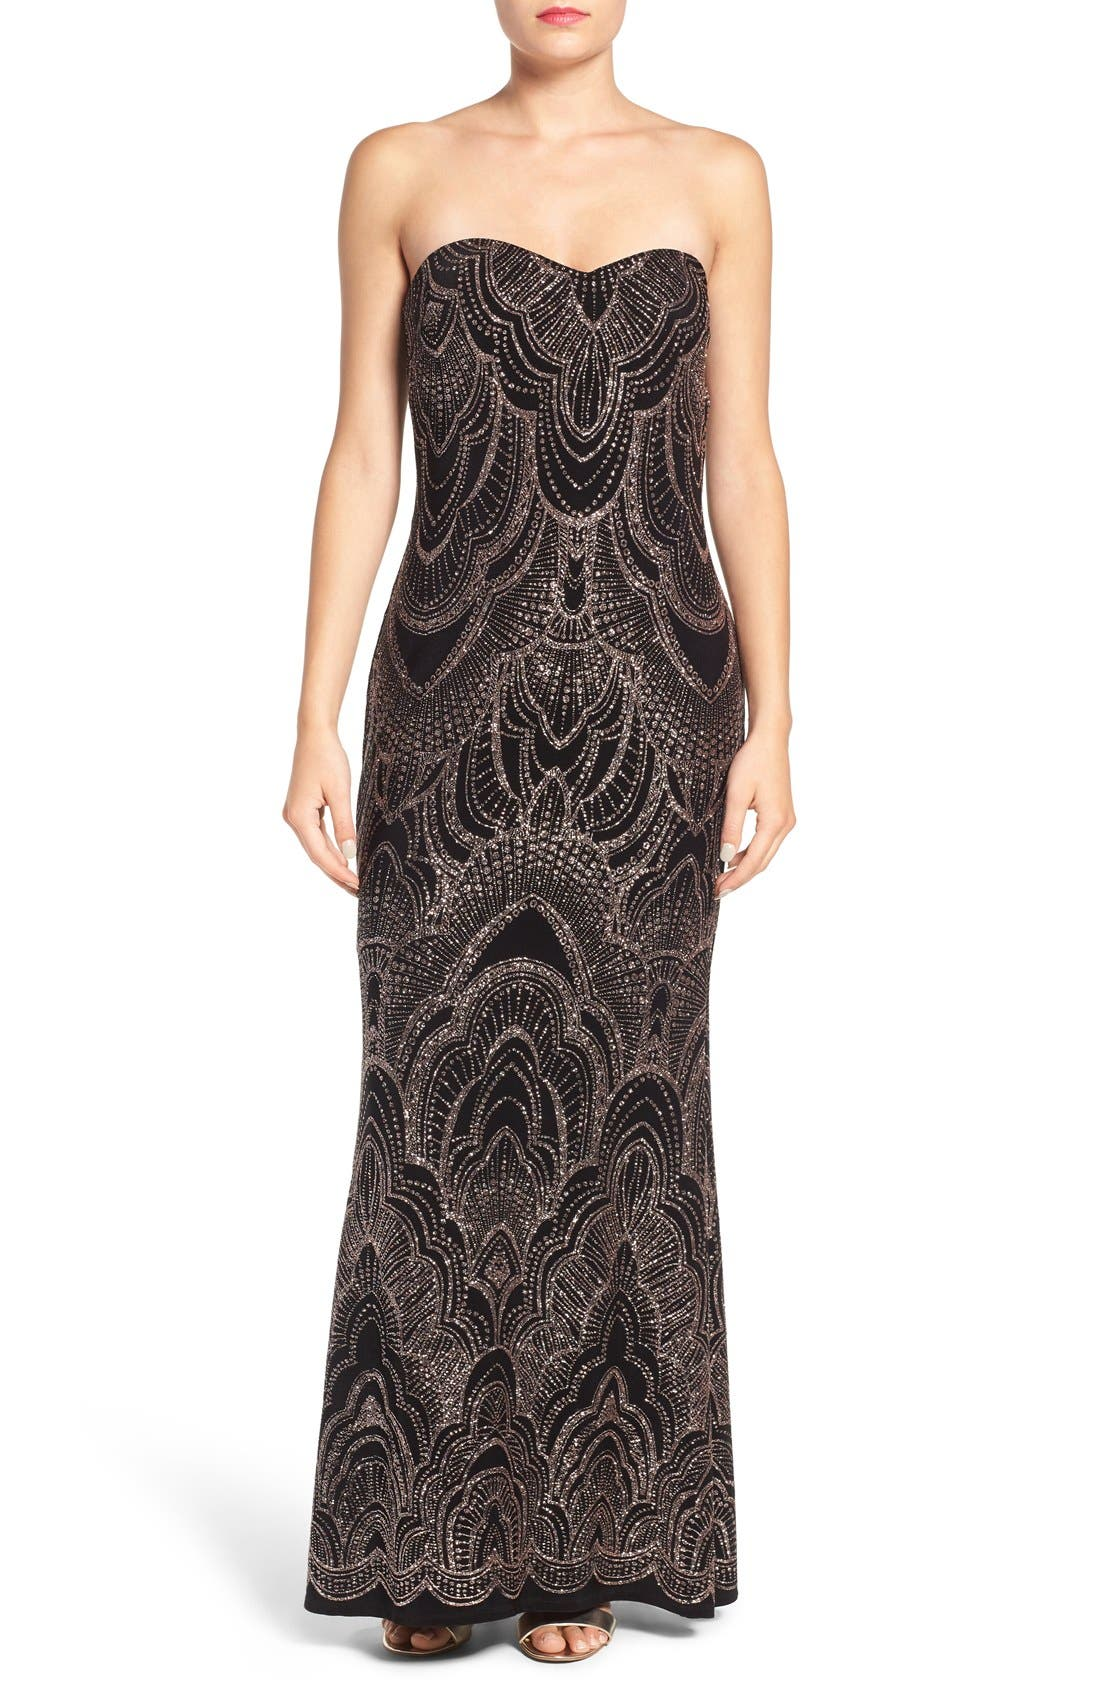 Alternate Image 1 Selected - Jump Apparel Glitter Print Strapless Gown